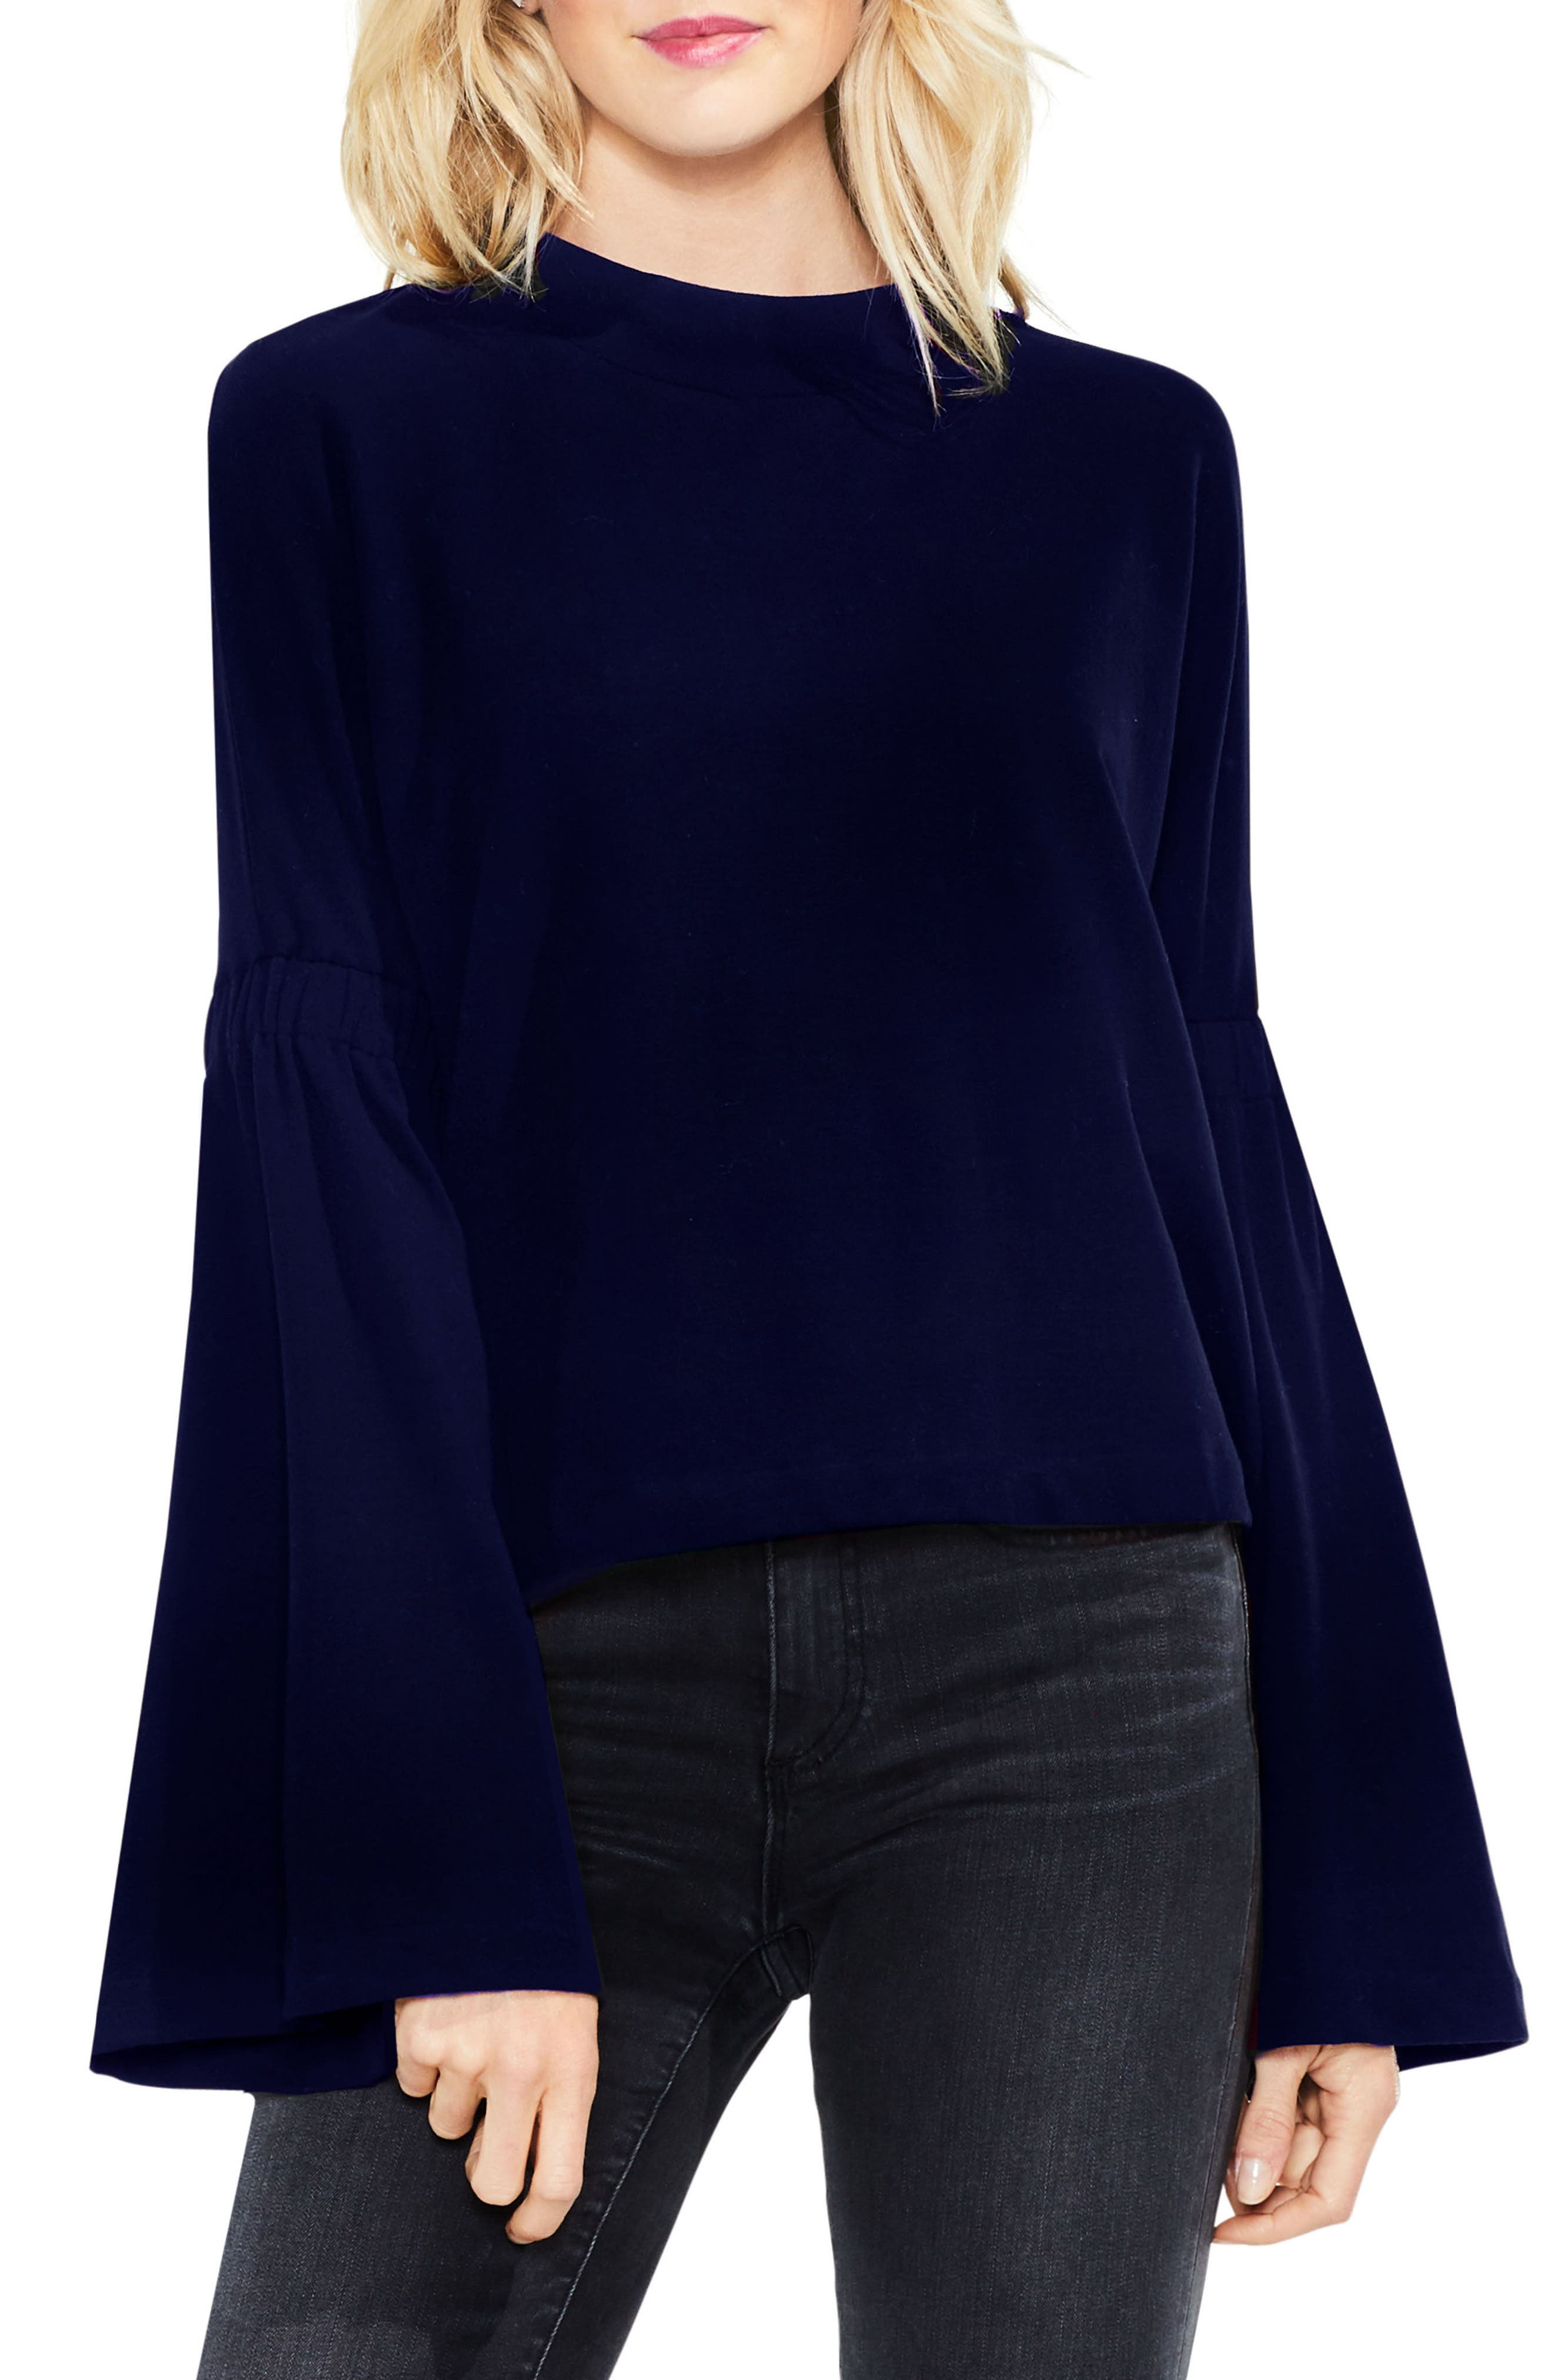 Alternate Image 1 Selected - Two by Vince Camuto Mock Neck Bell Sleeve Top (Regular & Petite)